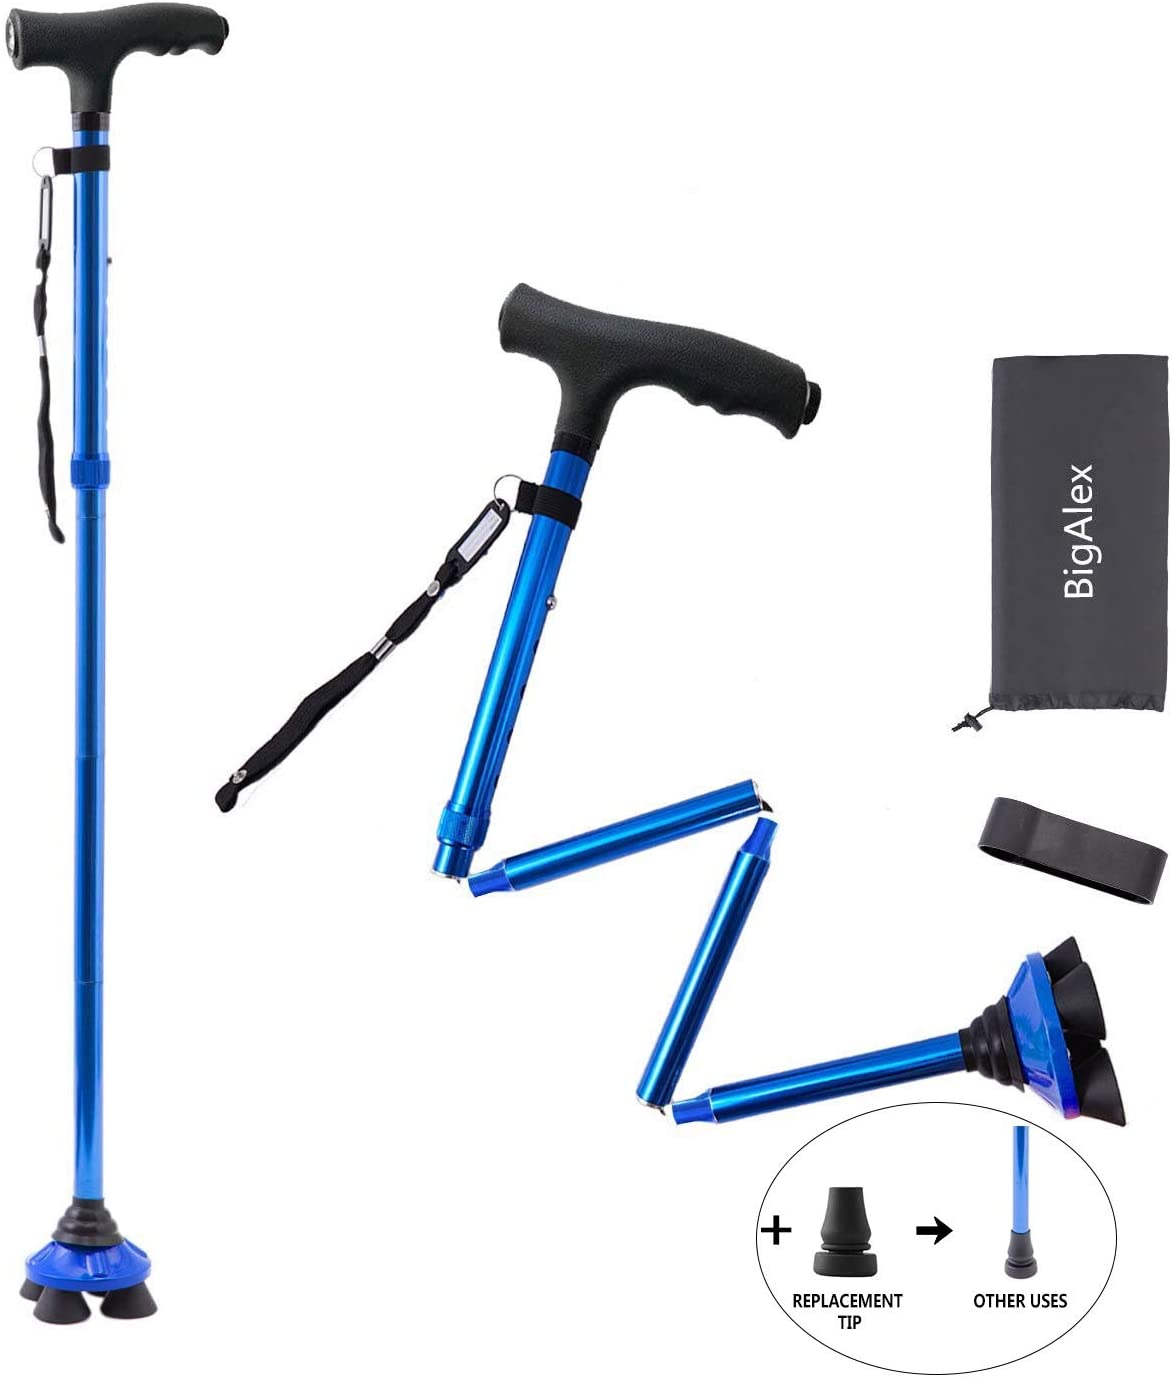 BigAlex Folding Walking Cane with LED Light,Pivoting Quad Base,Adjustable Walking Stick with Carrying Bag for Man/Woman (4.9'-5.6' Blue )